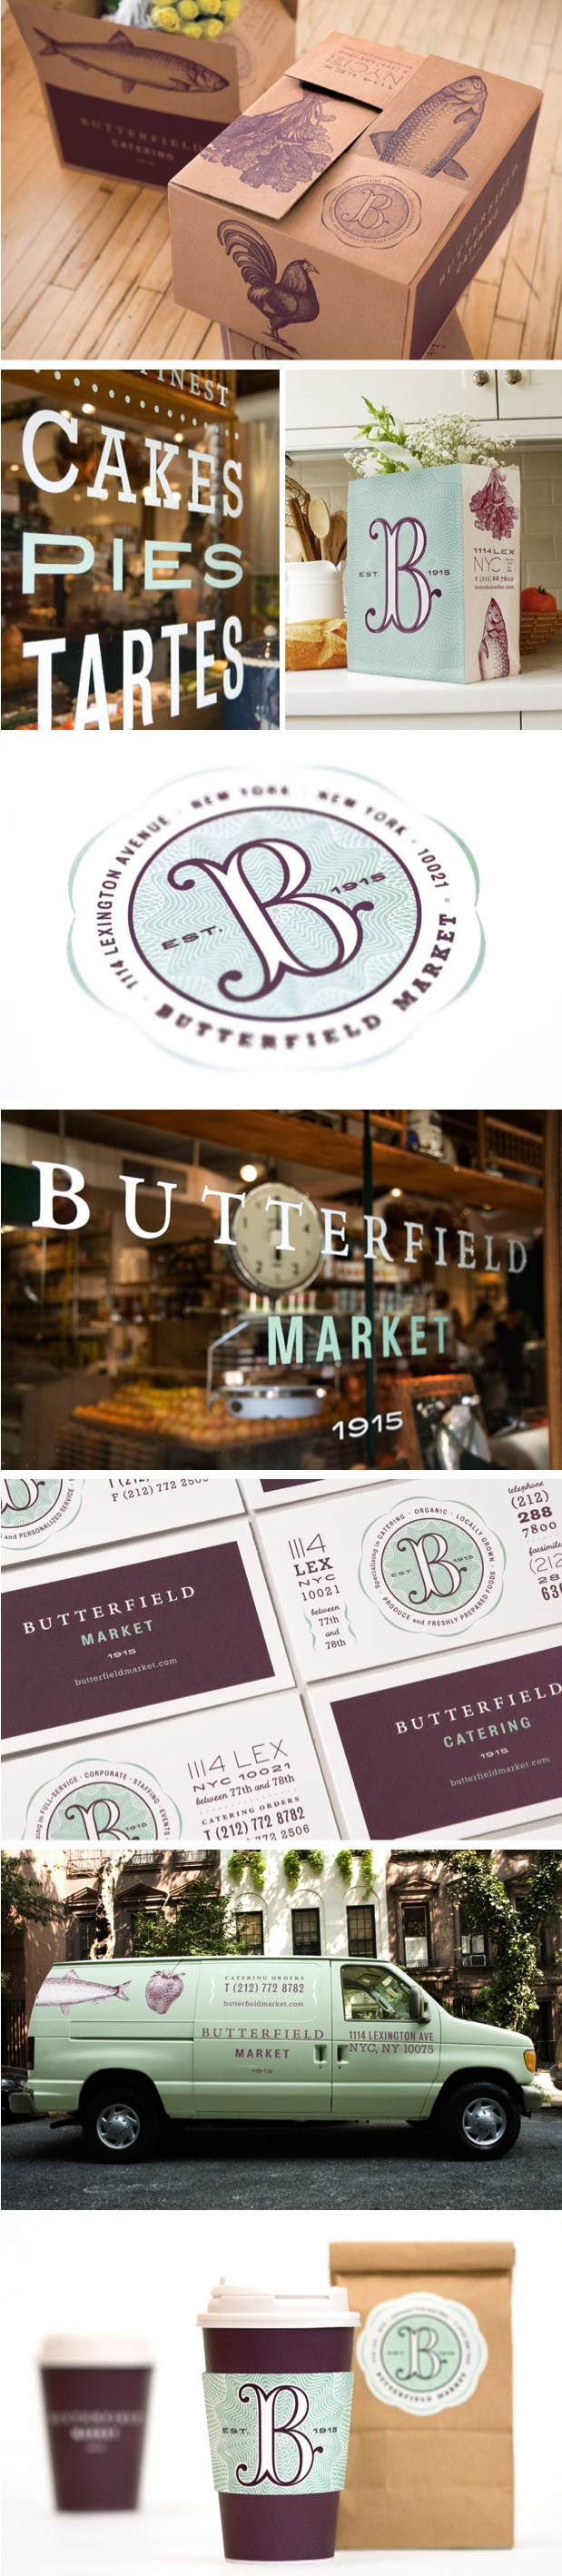 "Hopefully their food is as delicious as these designs. Ew, that was cheesy. ""Butterfield Market Branding."""